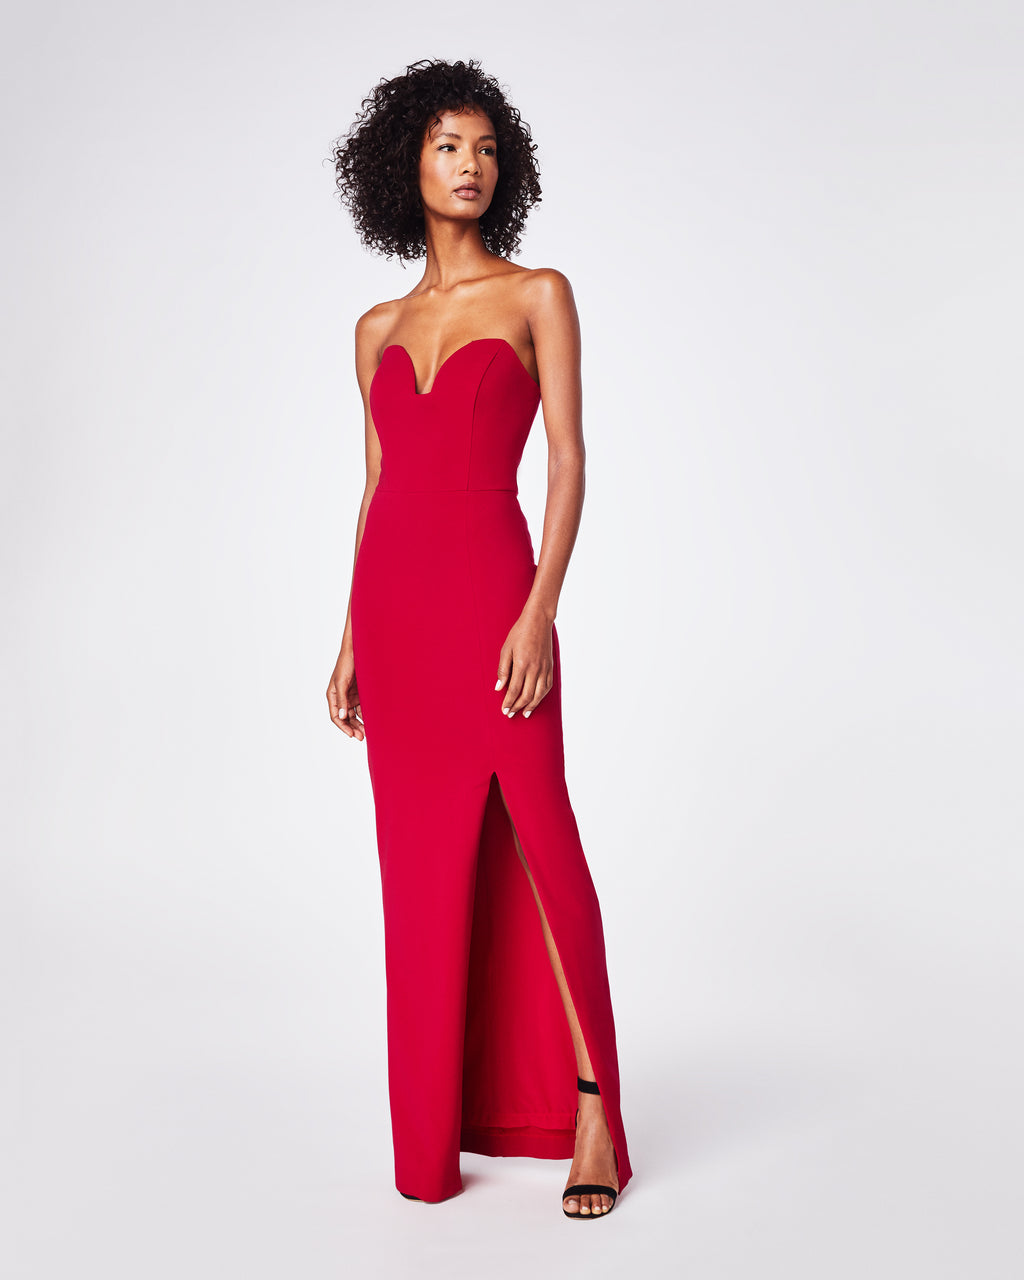 CF10266 - STRUCTURED HEAVY JERSEY STRAPLESS GOWN - dresses - long - This gown is made from stretchy matte jersey, a soft and comfortable fabric. It has a sweatheart plunge neckline. The long length makes it perfect for any black tie event.